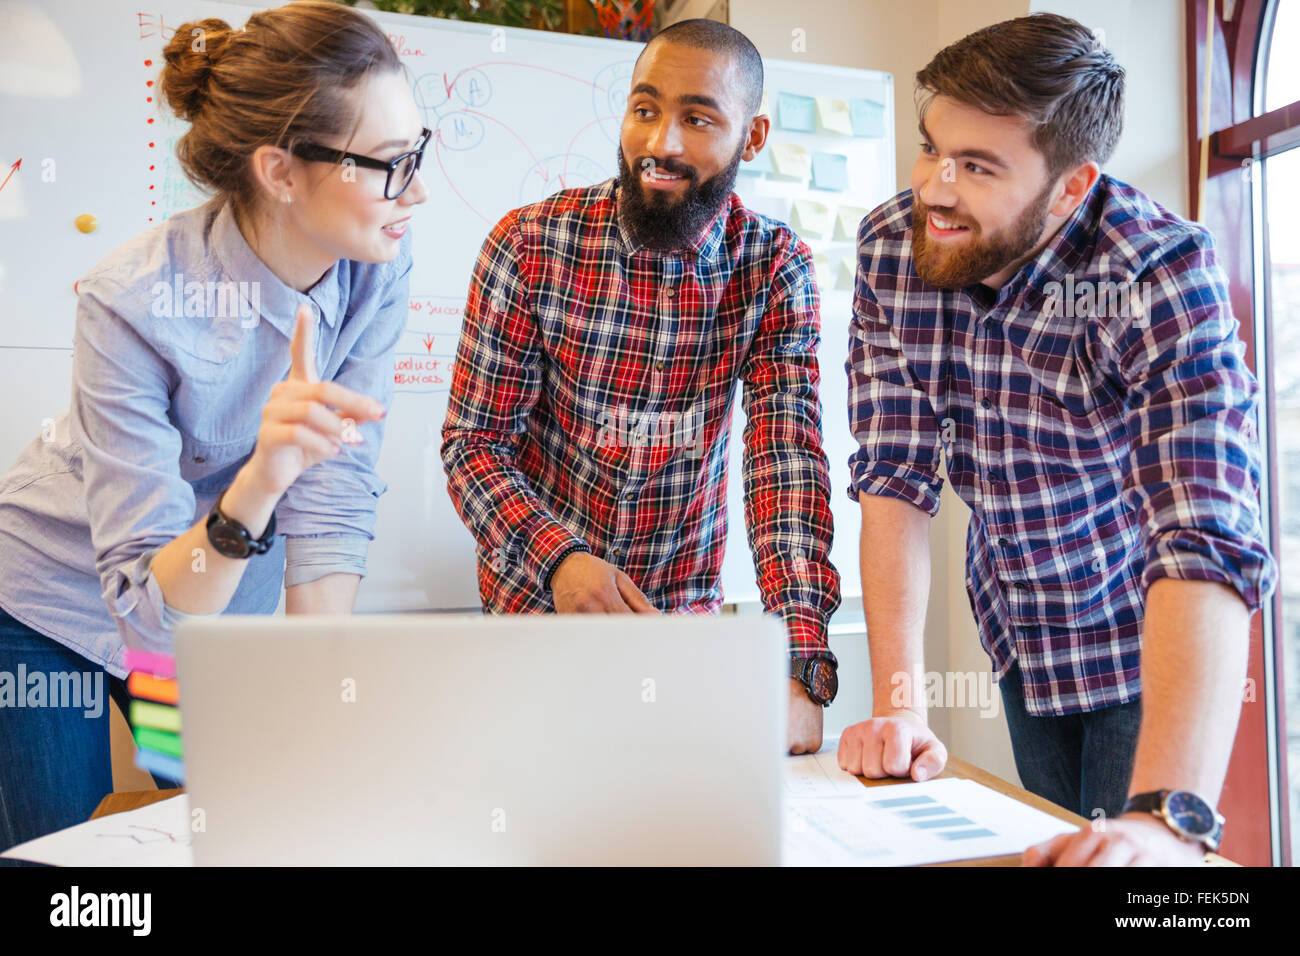 Multiethnic group of young business people working in office - Stock Image